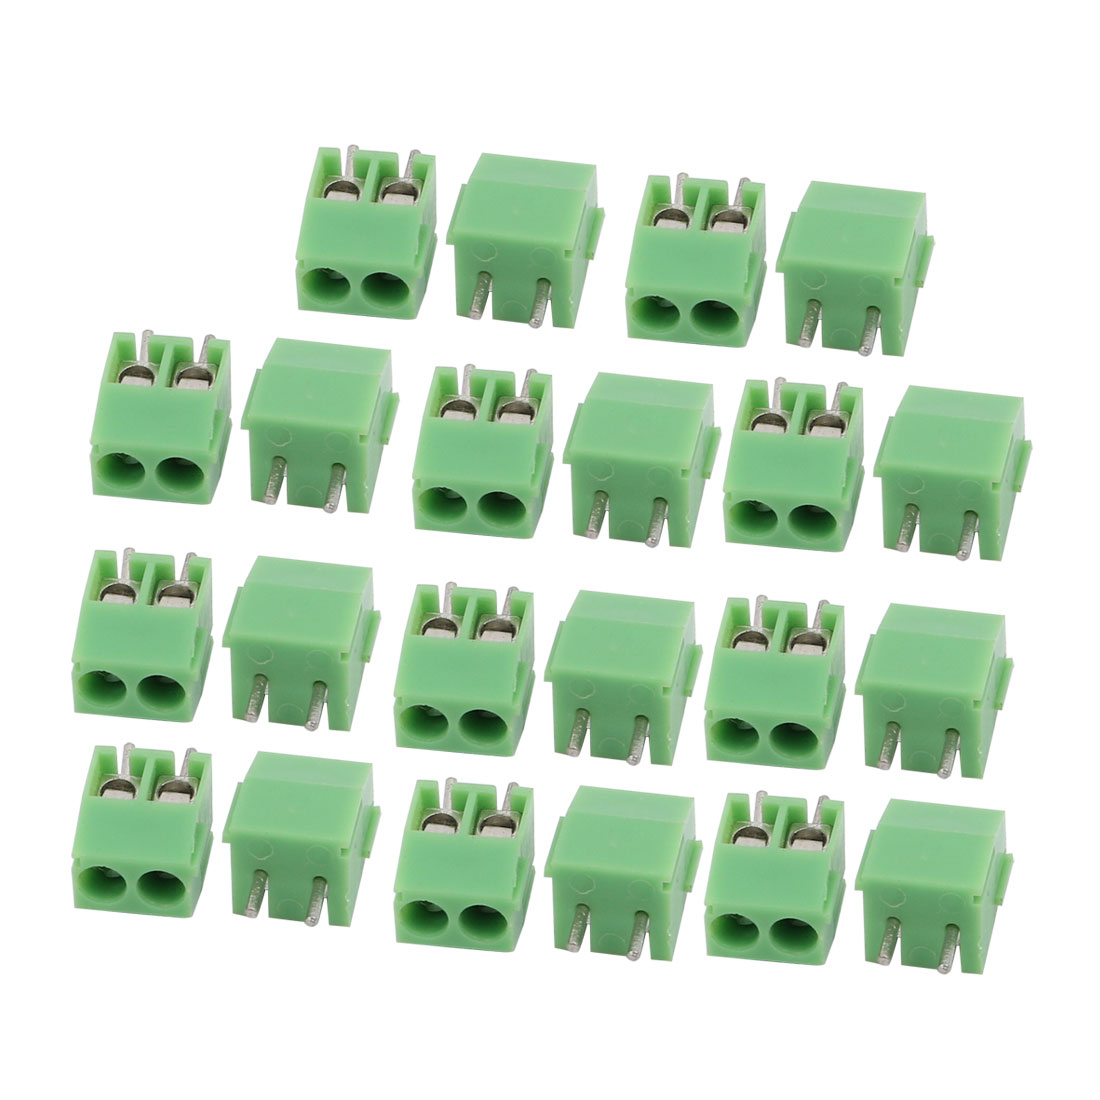 22Pcs AC 300V 10A 3.5mm Pitch 2P Terminal Block PCB Mount Wire Connection